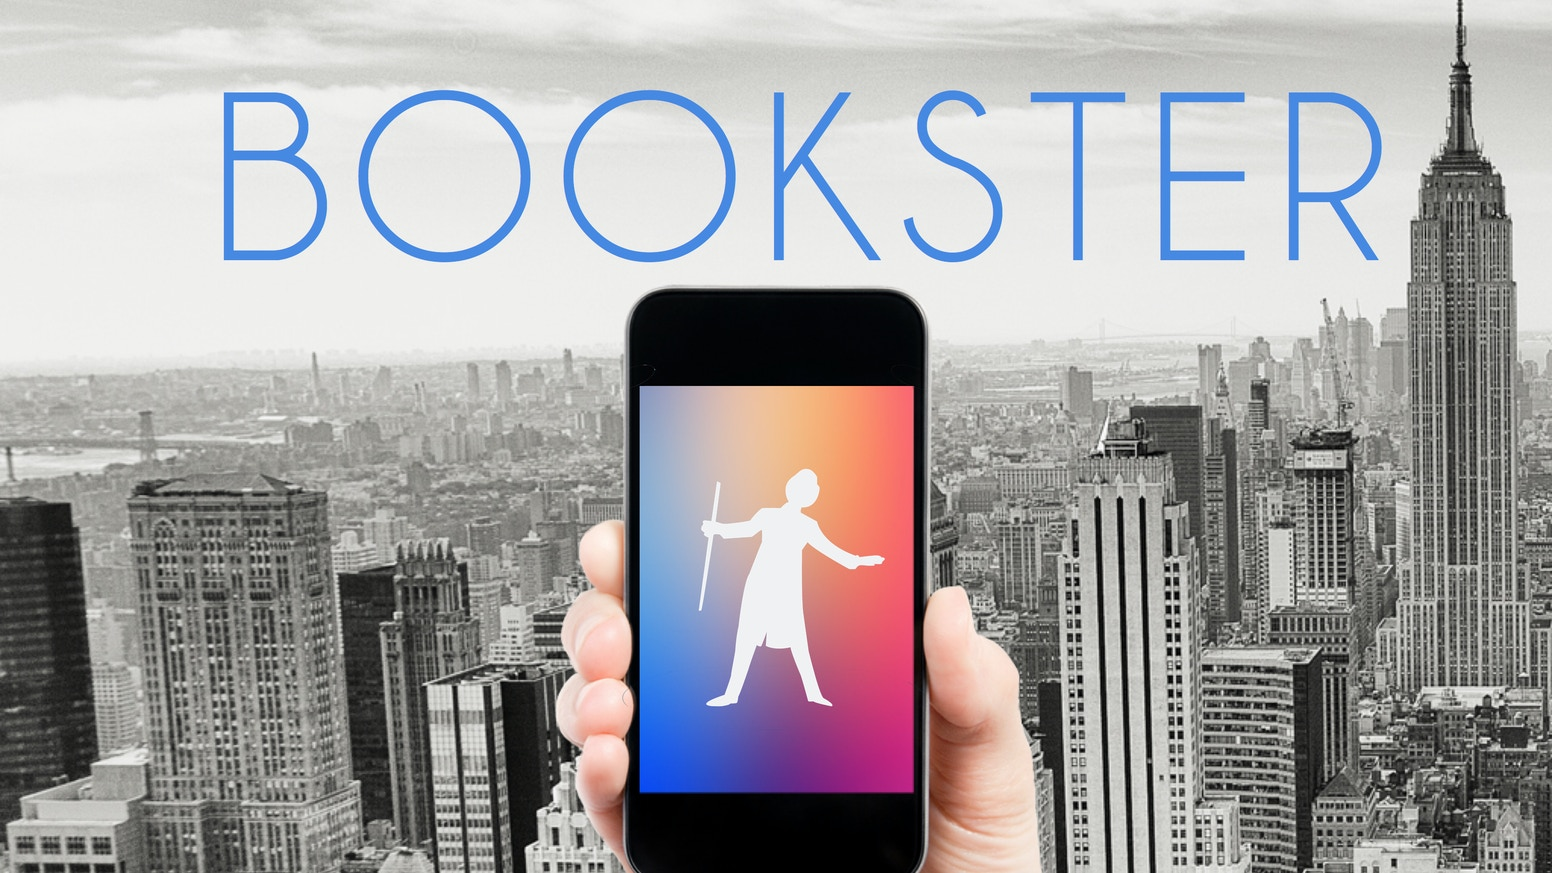 Bookster™ is a revolutionary mobile app for actors and performers to manage their auditions.